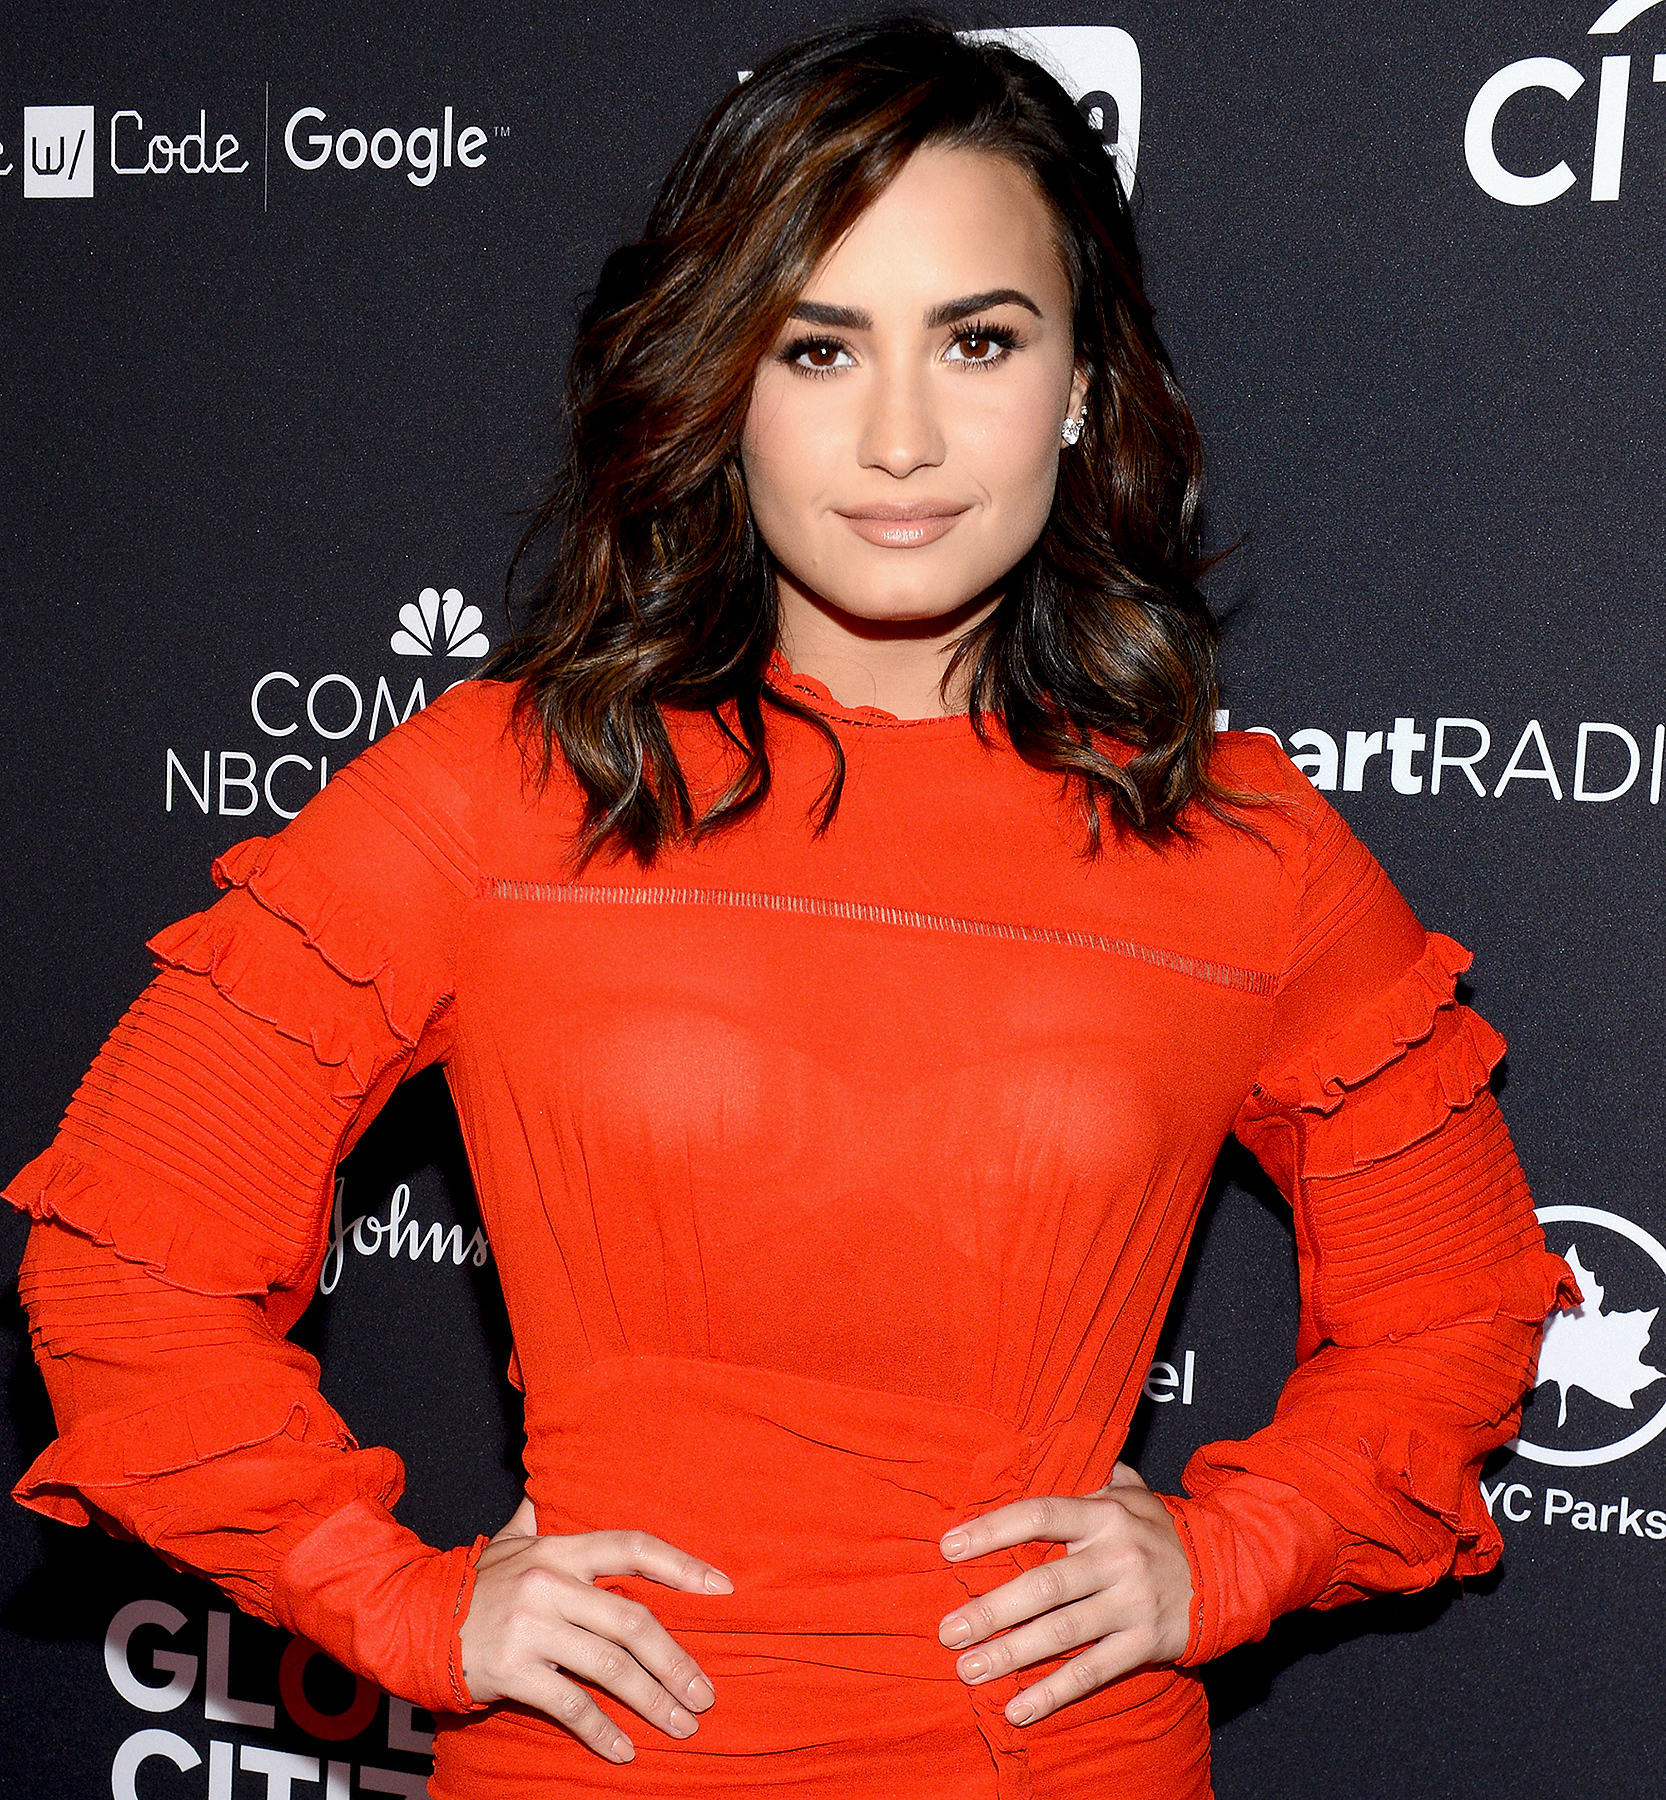 Demi Lovato attends the 2016 Global Citizen Festival In Central Park To End Extreme Poverty By 2030 at Central Park on September 24, 2016.